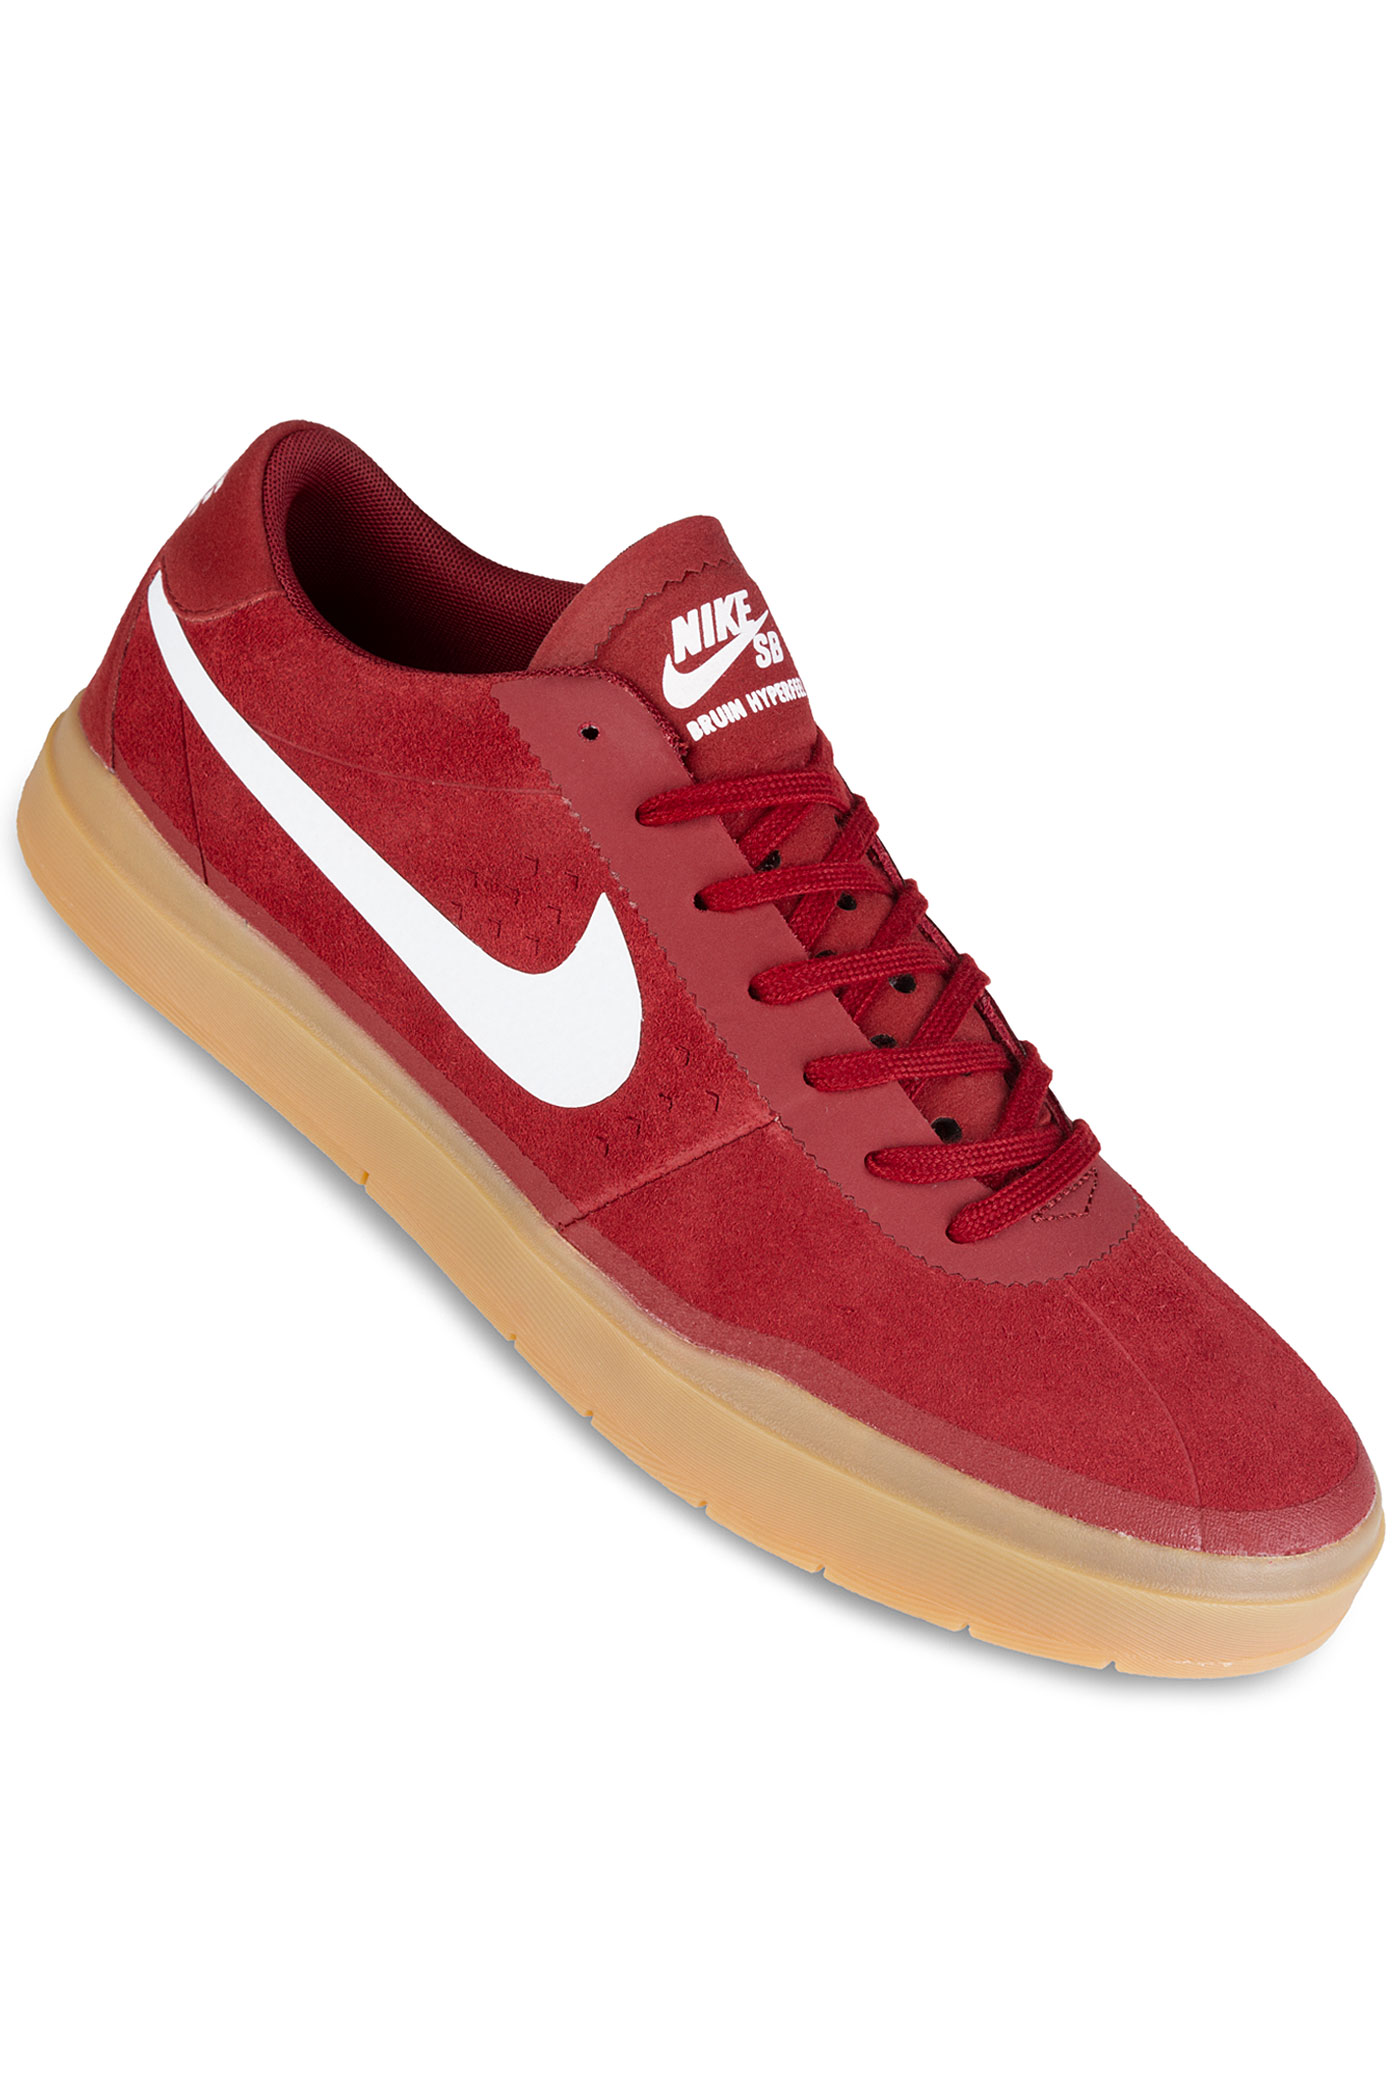 nike sb bruin hyperfeel shoes dark cayenne white buy at. Black Bedroom Furniture Sets. Home Design Ideas